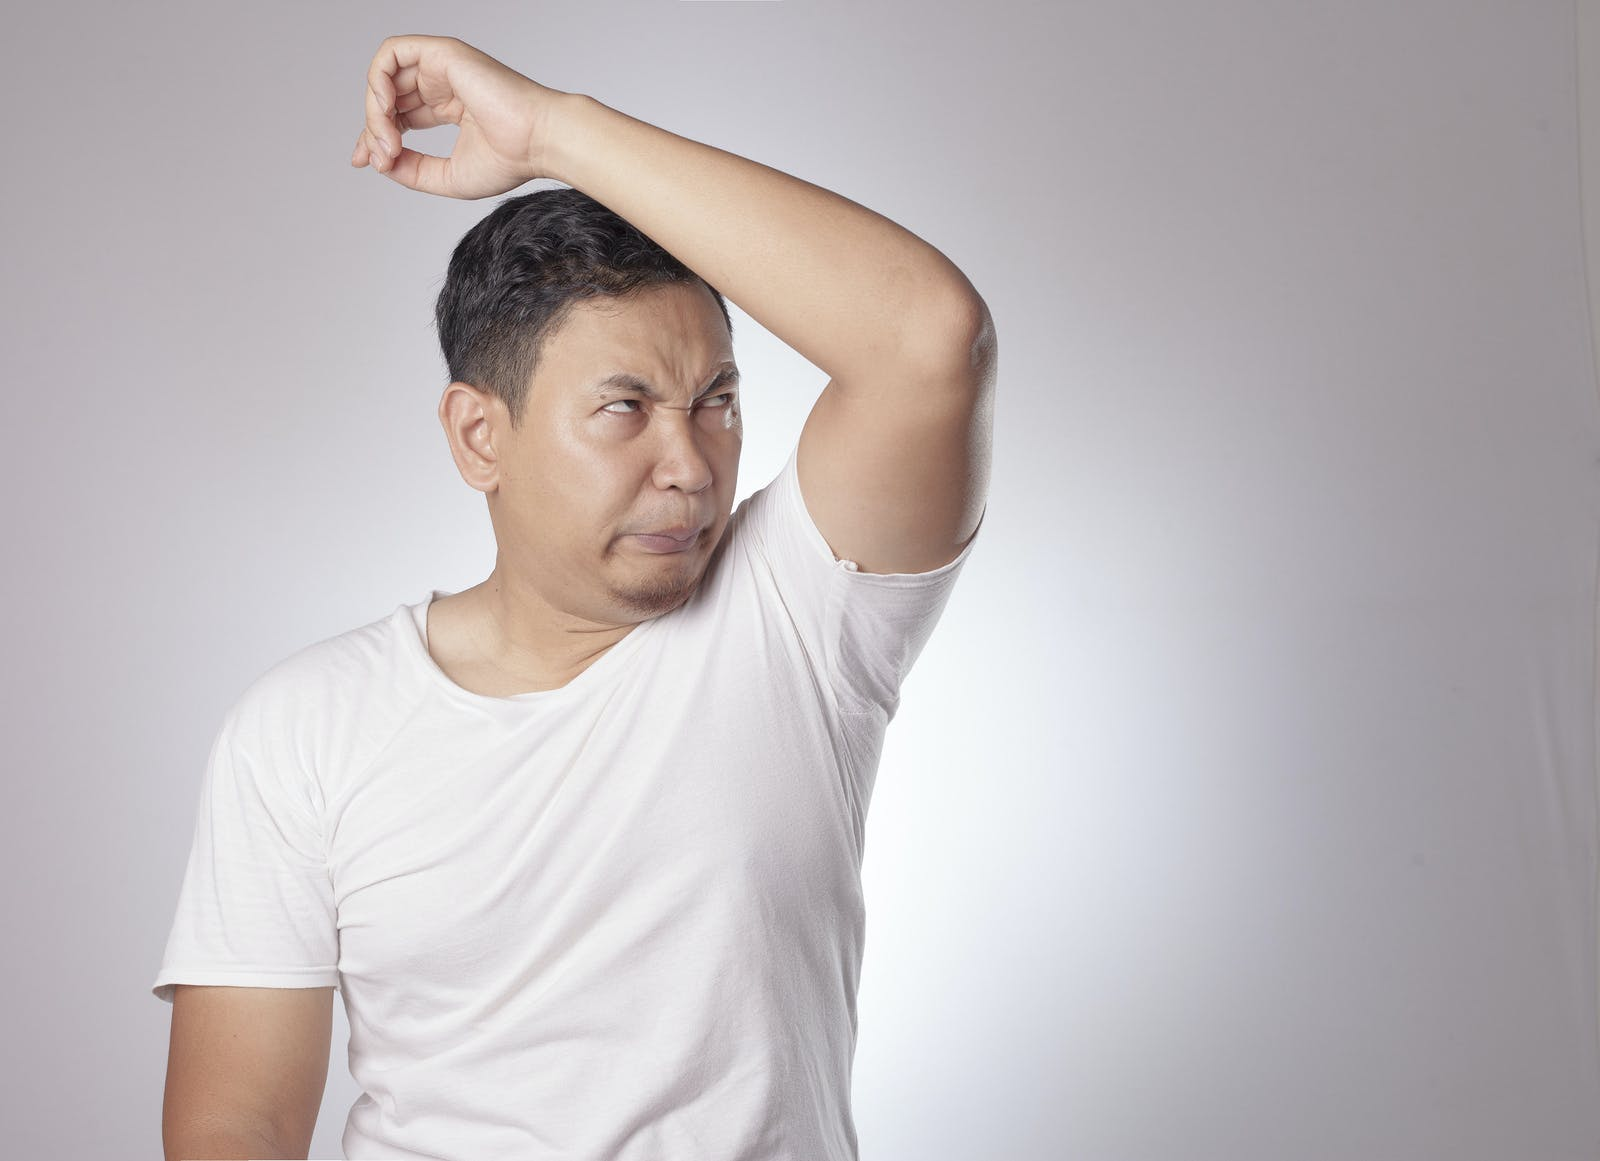 Man in T shirt sniffs his left armpit to see if he has horrible body odor